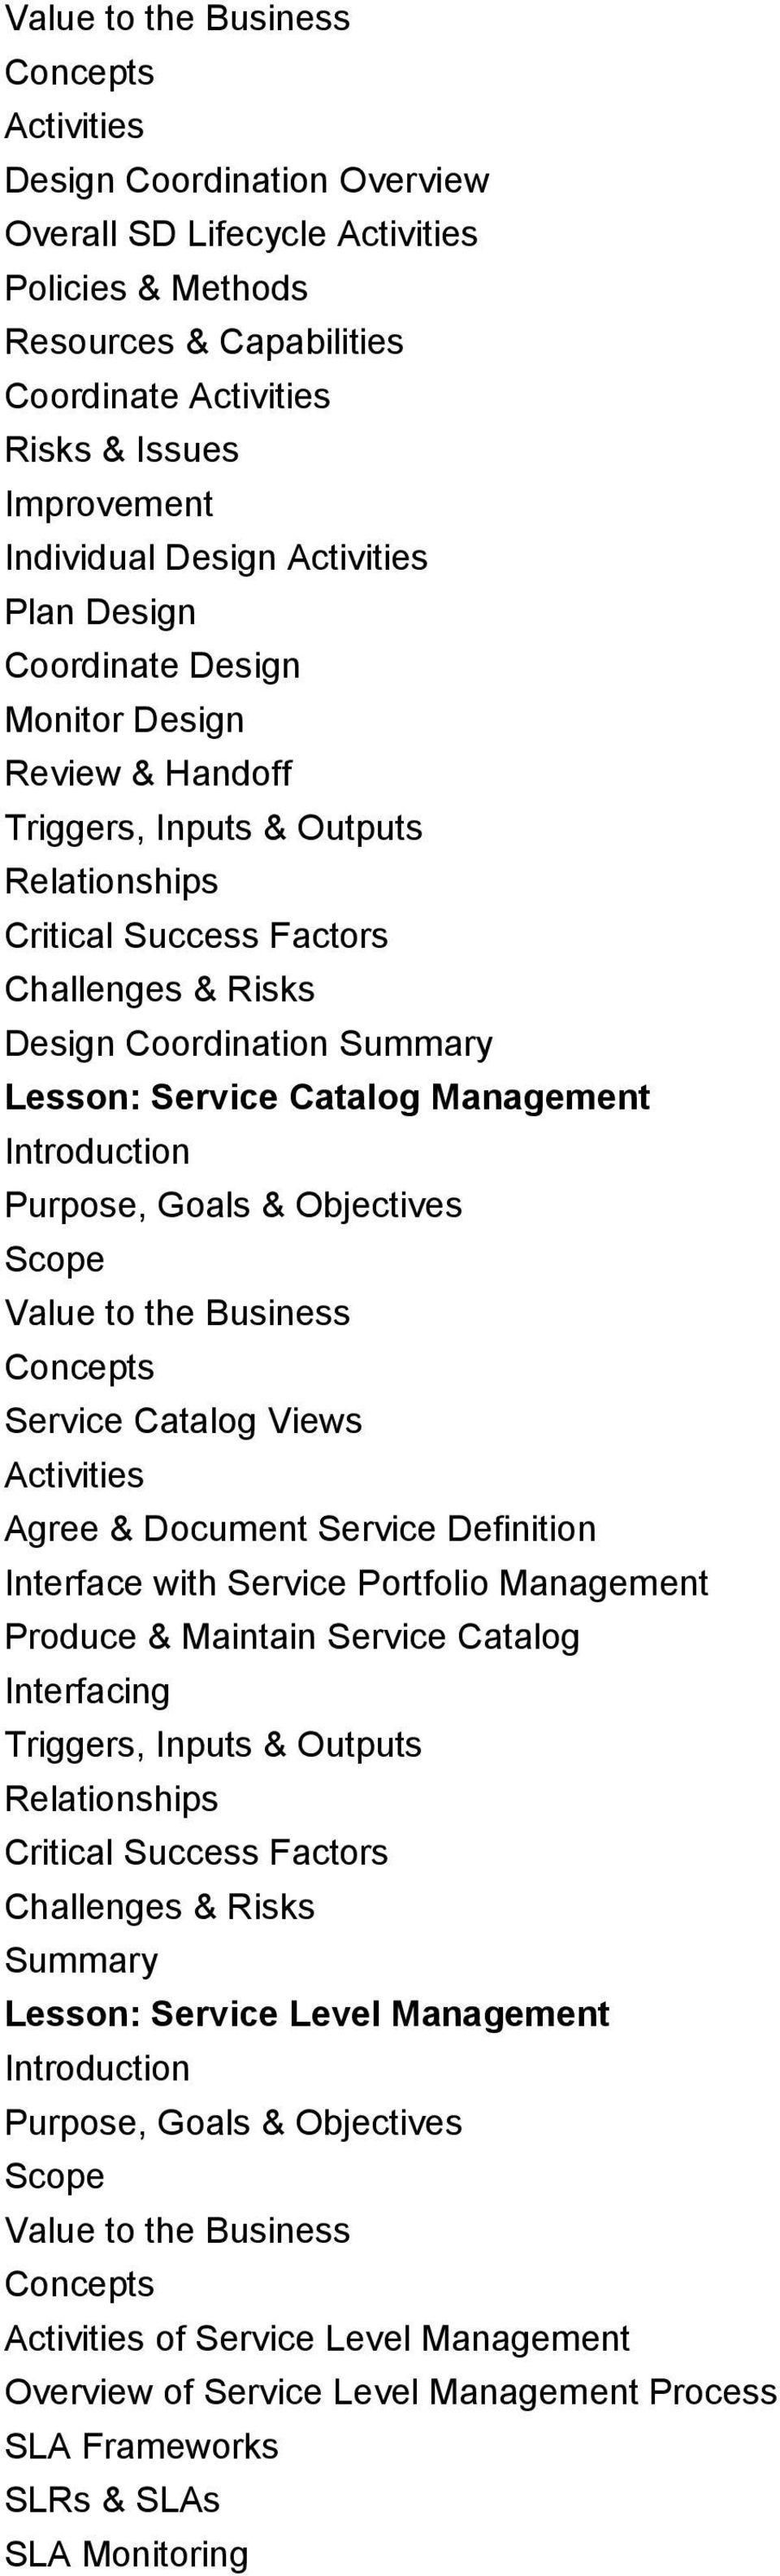 Catalog Views Agree & Document Service Definition Interface with Service Portfolio Management Produce & Maintain Service Catalog Interfacing